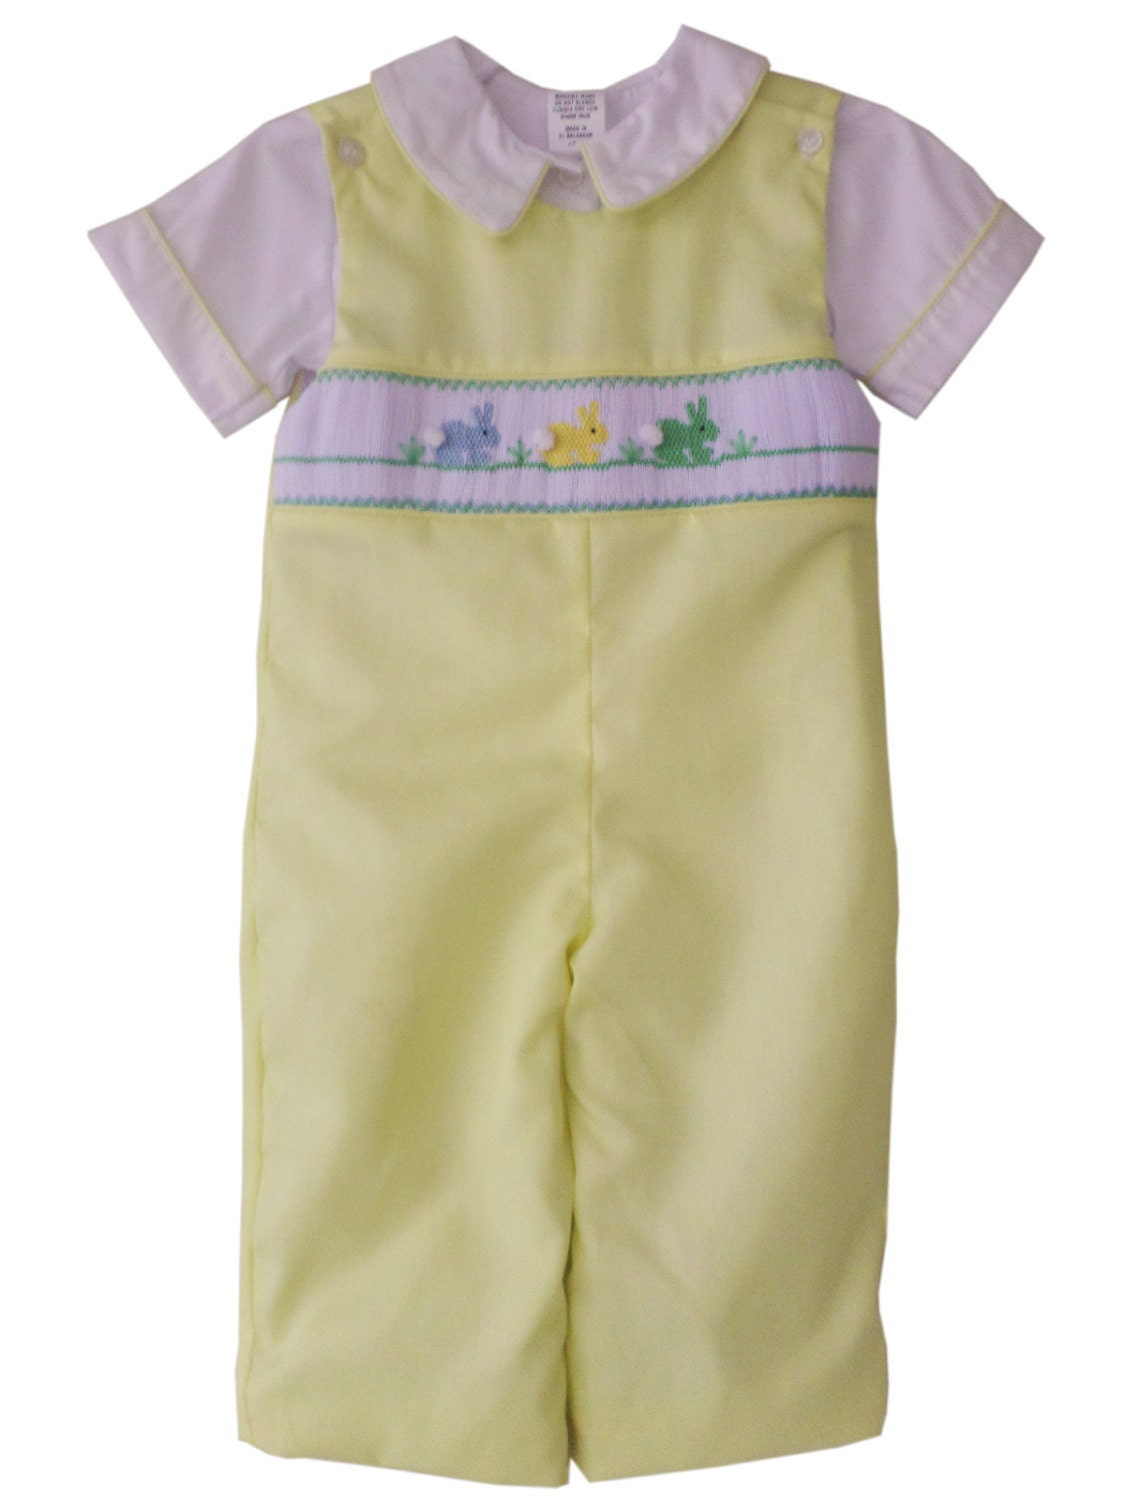 creative boys smocked outfits 14